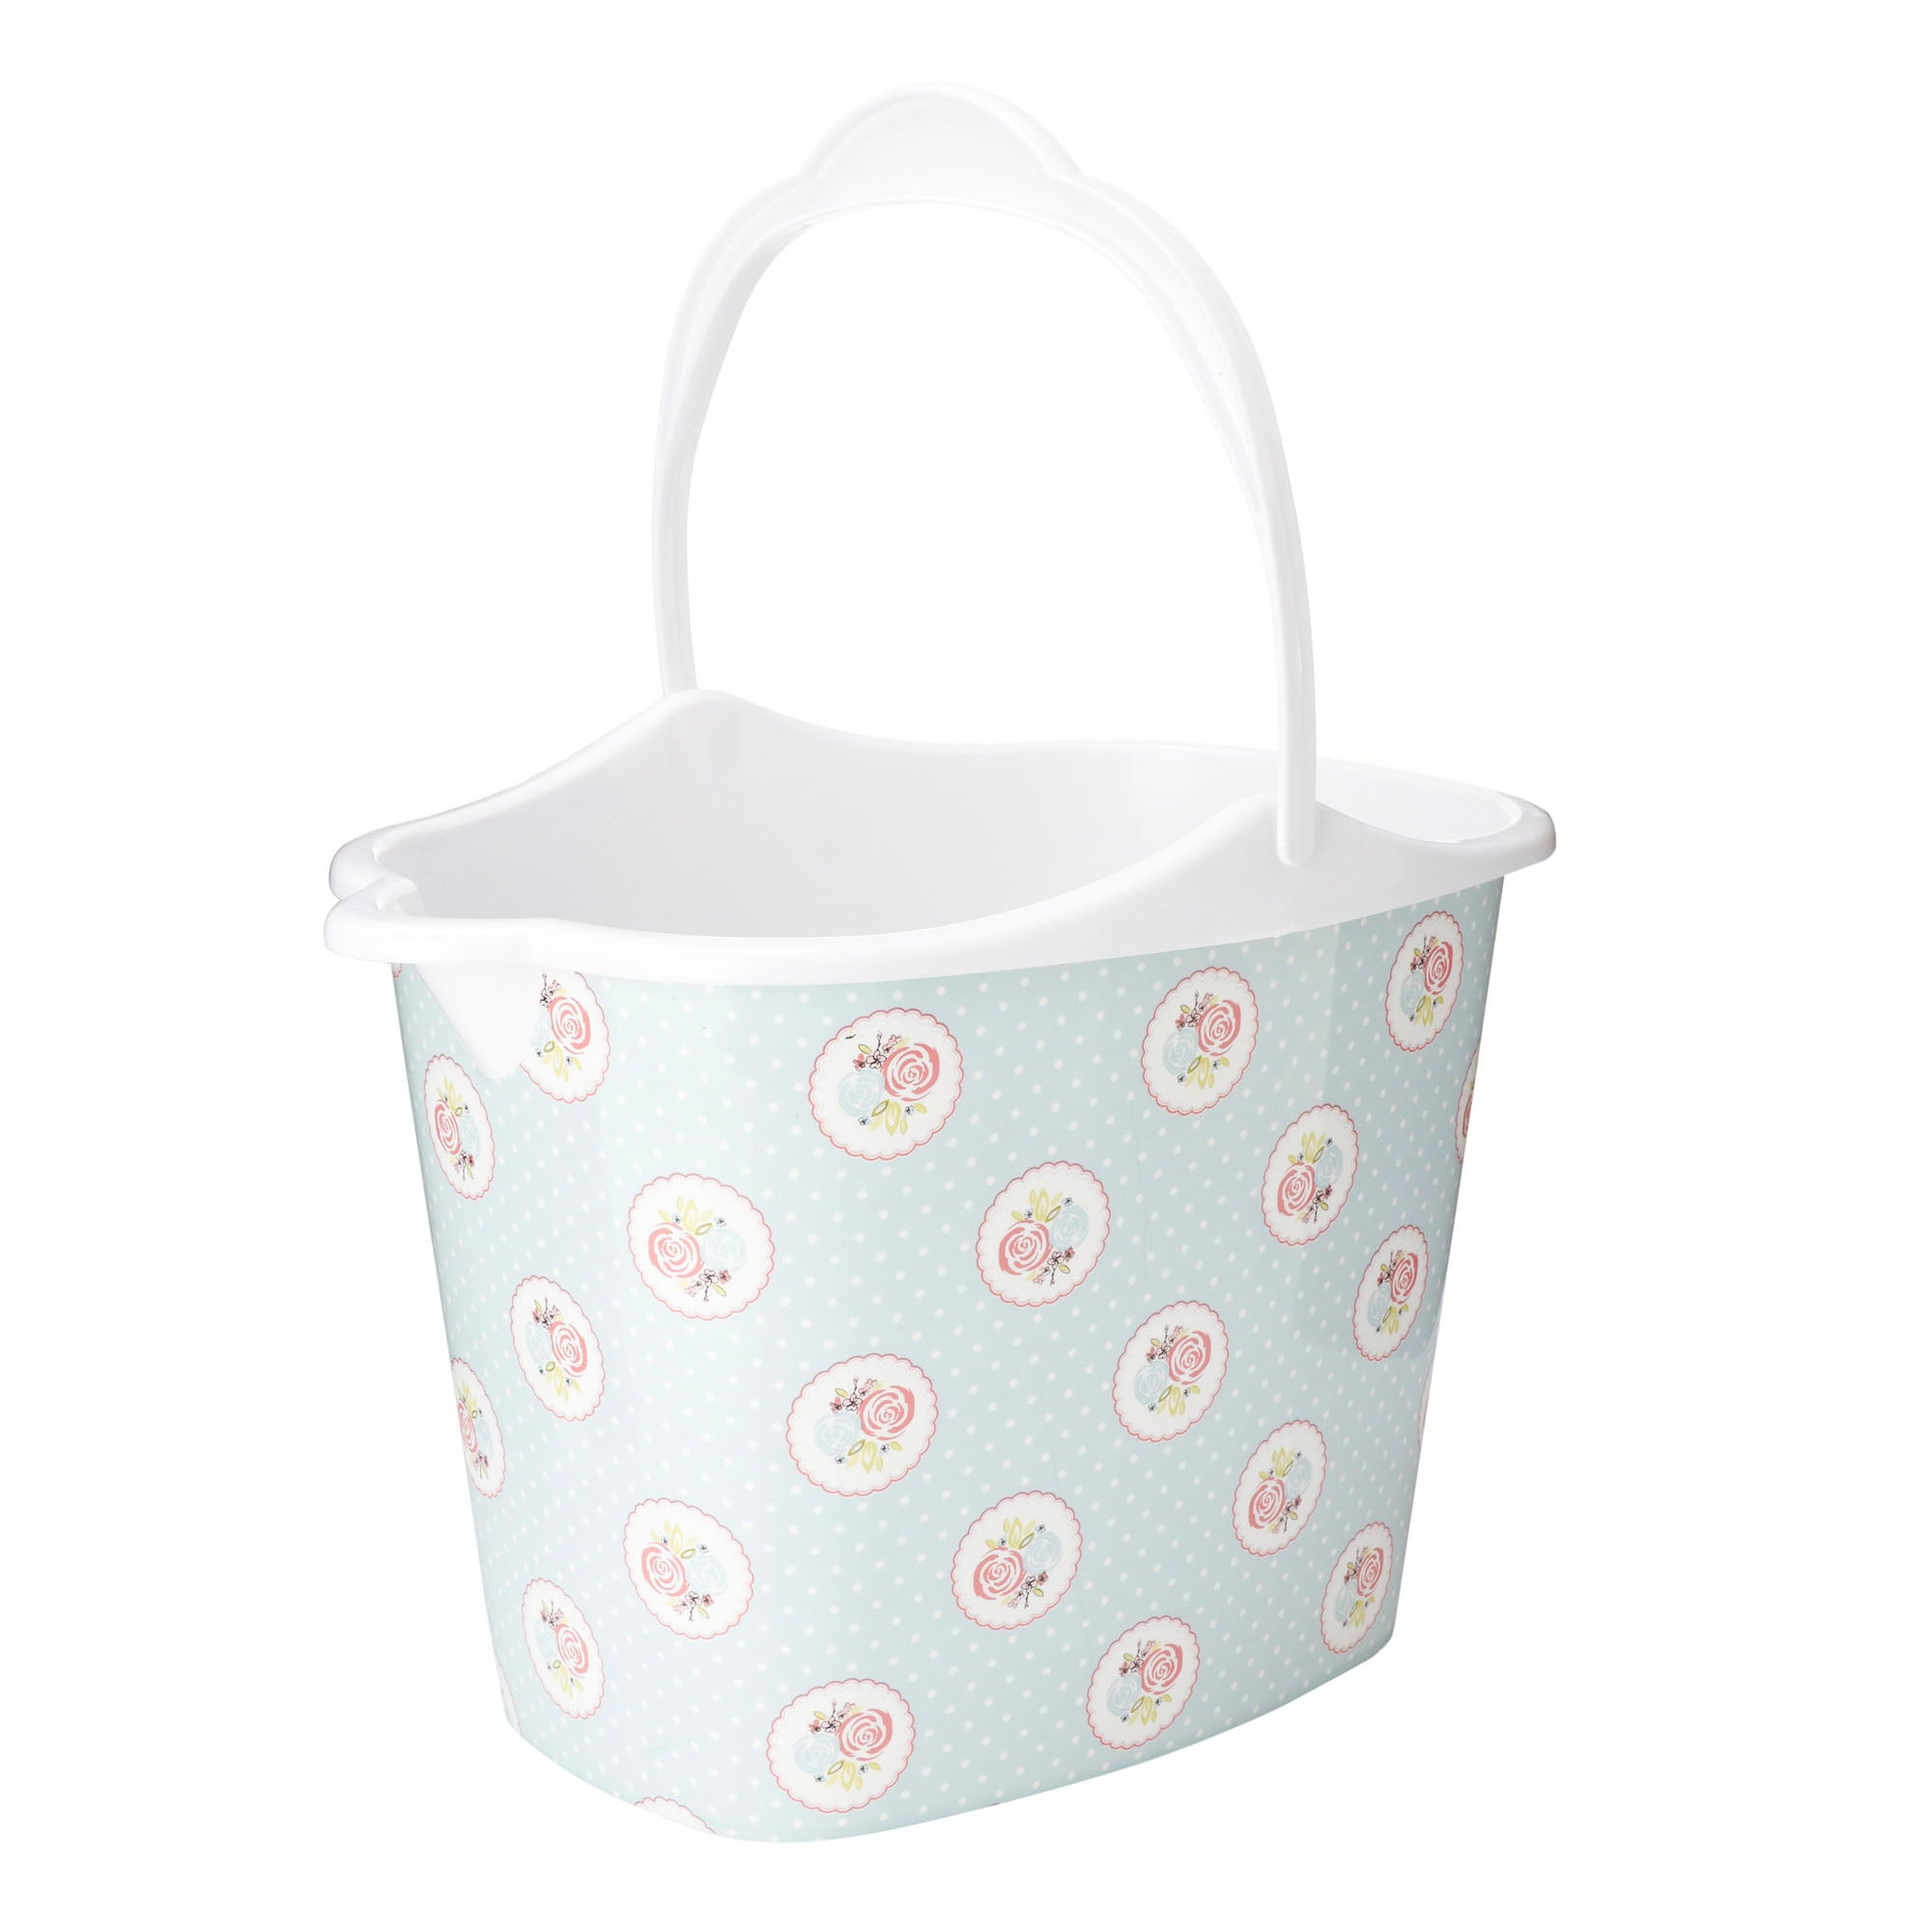 Patterned Cleaning Bucket